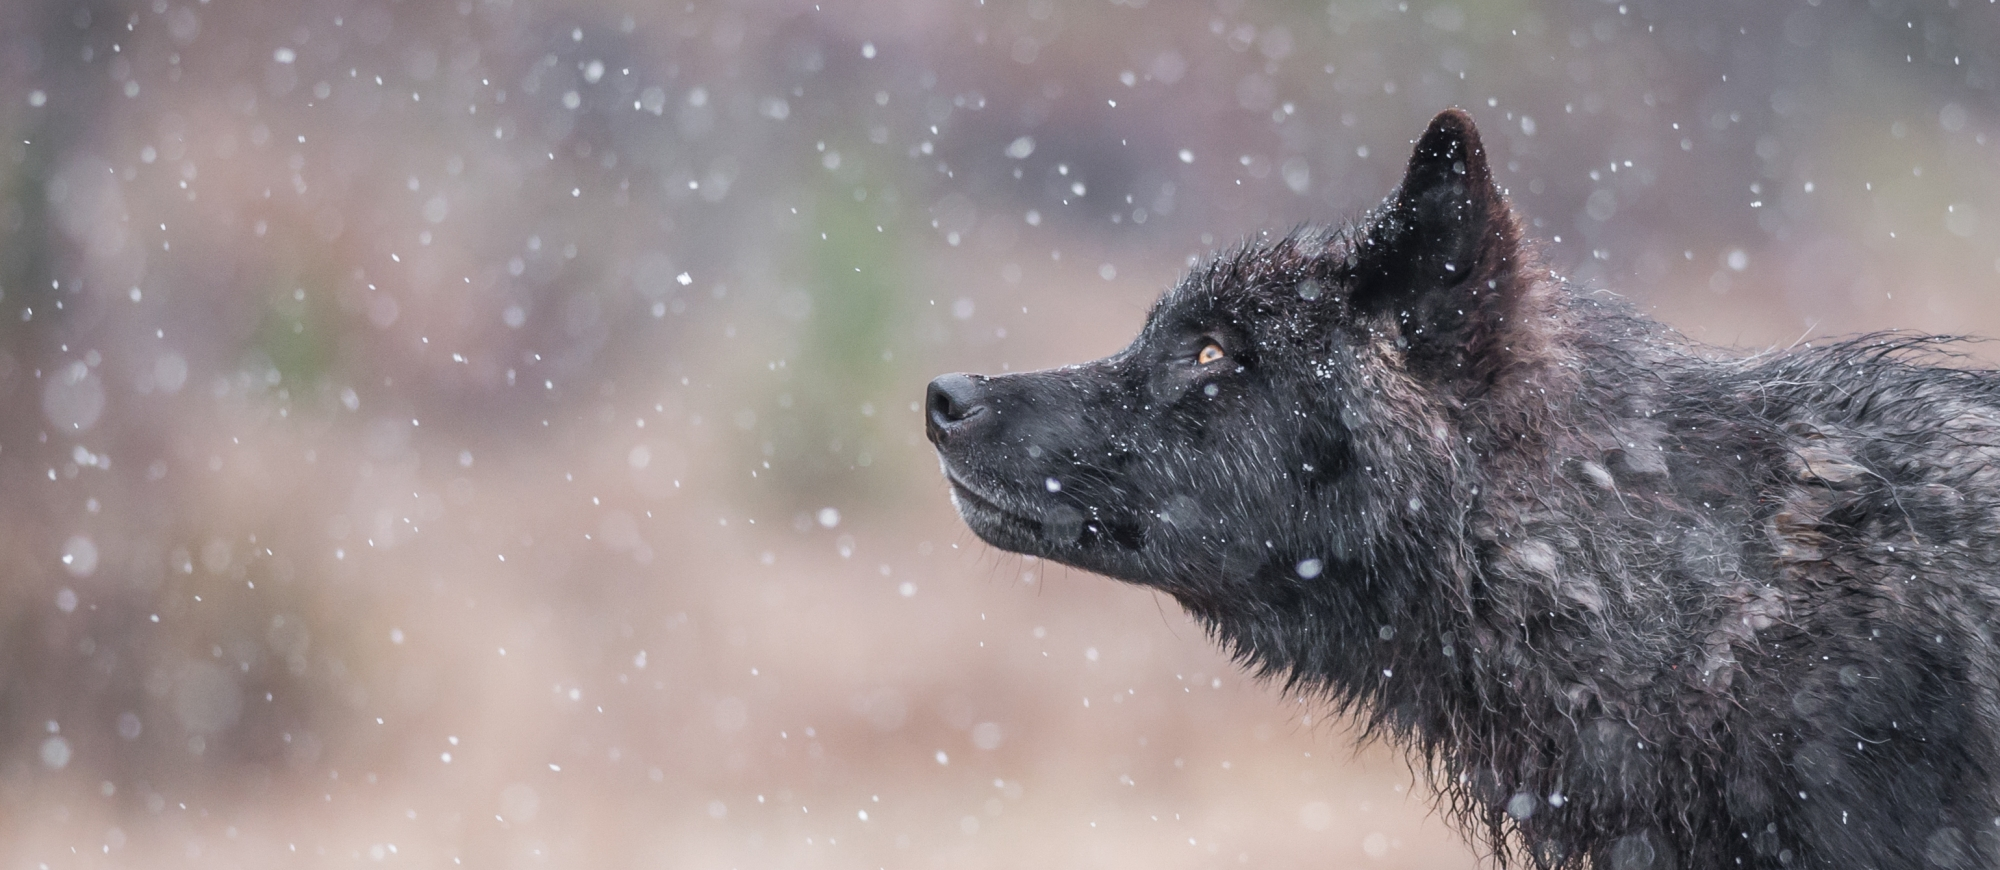 Kootenay wolf | Photo by Jesse Schpakowski